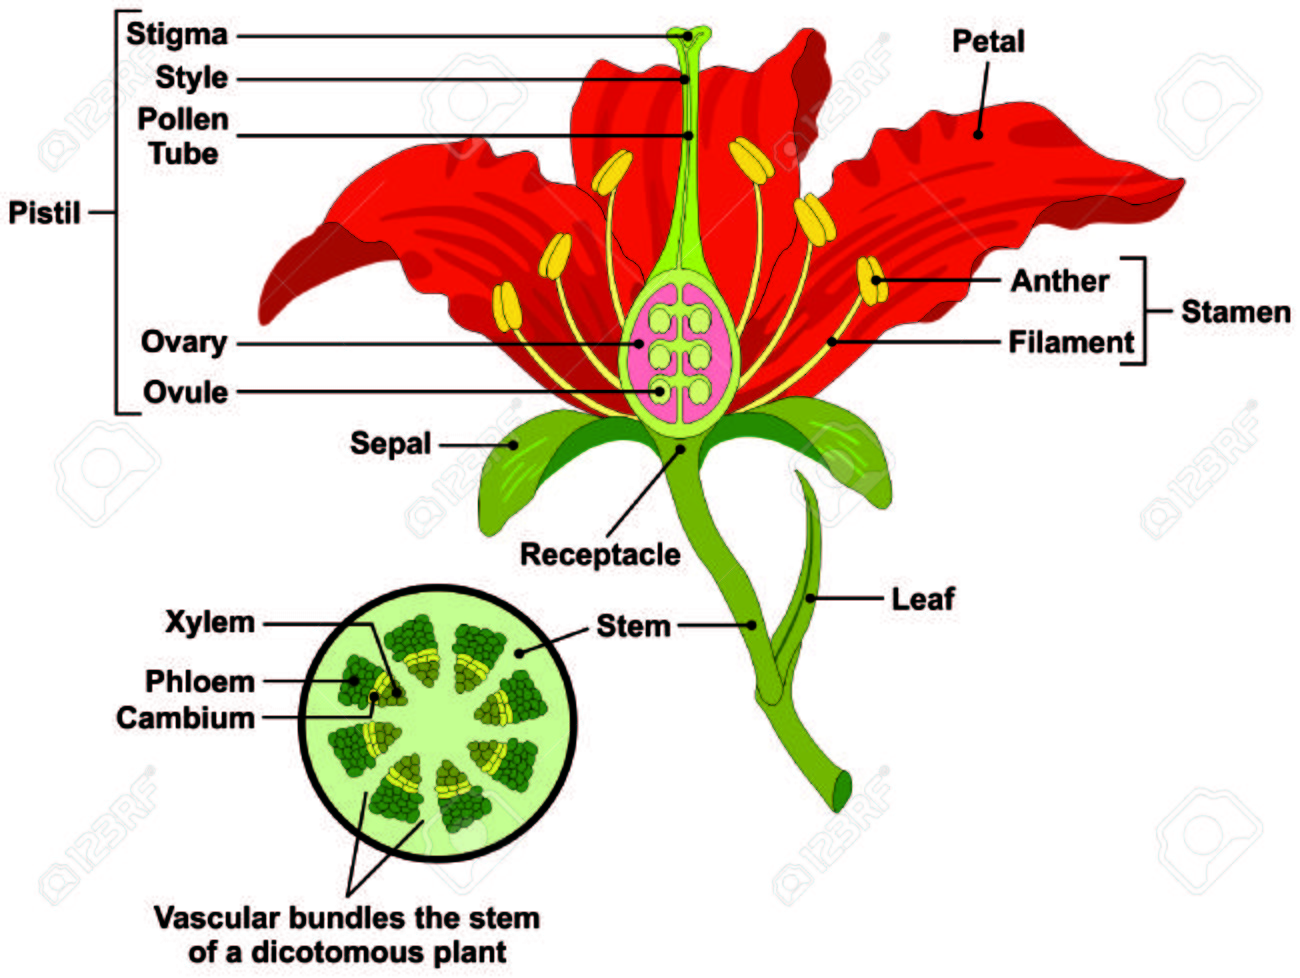 hight resolution of flower parts diagram with stem cross section anatomy of plant morphology and its contents useful for